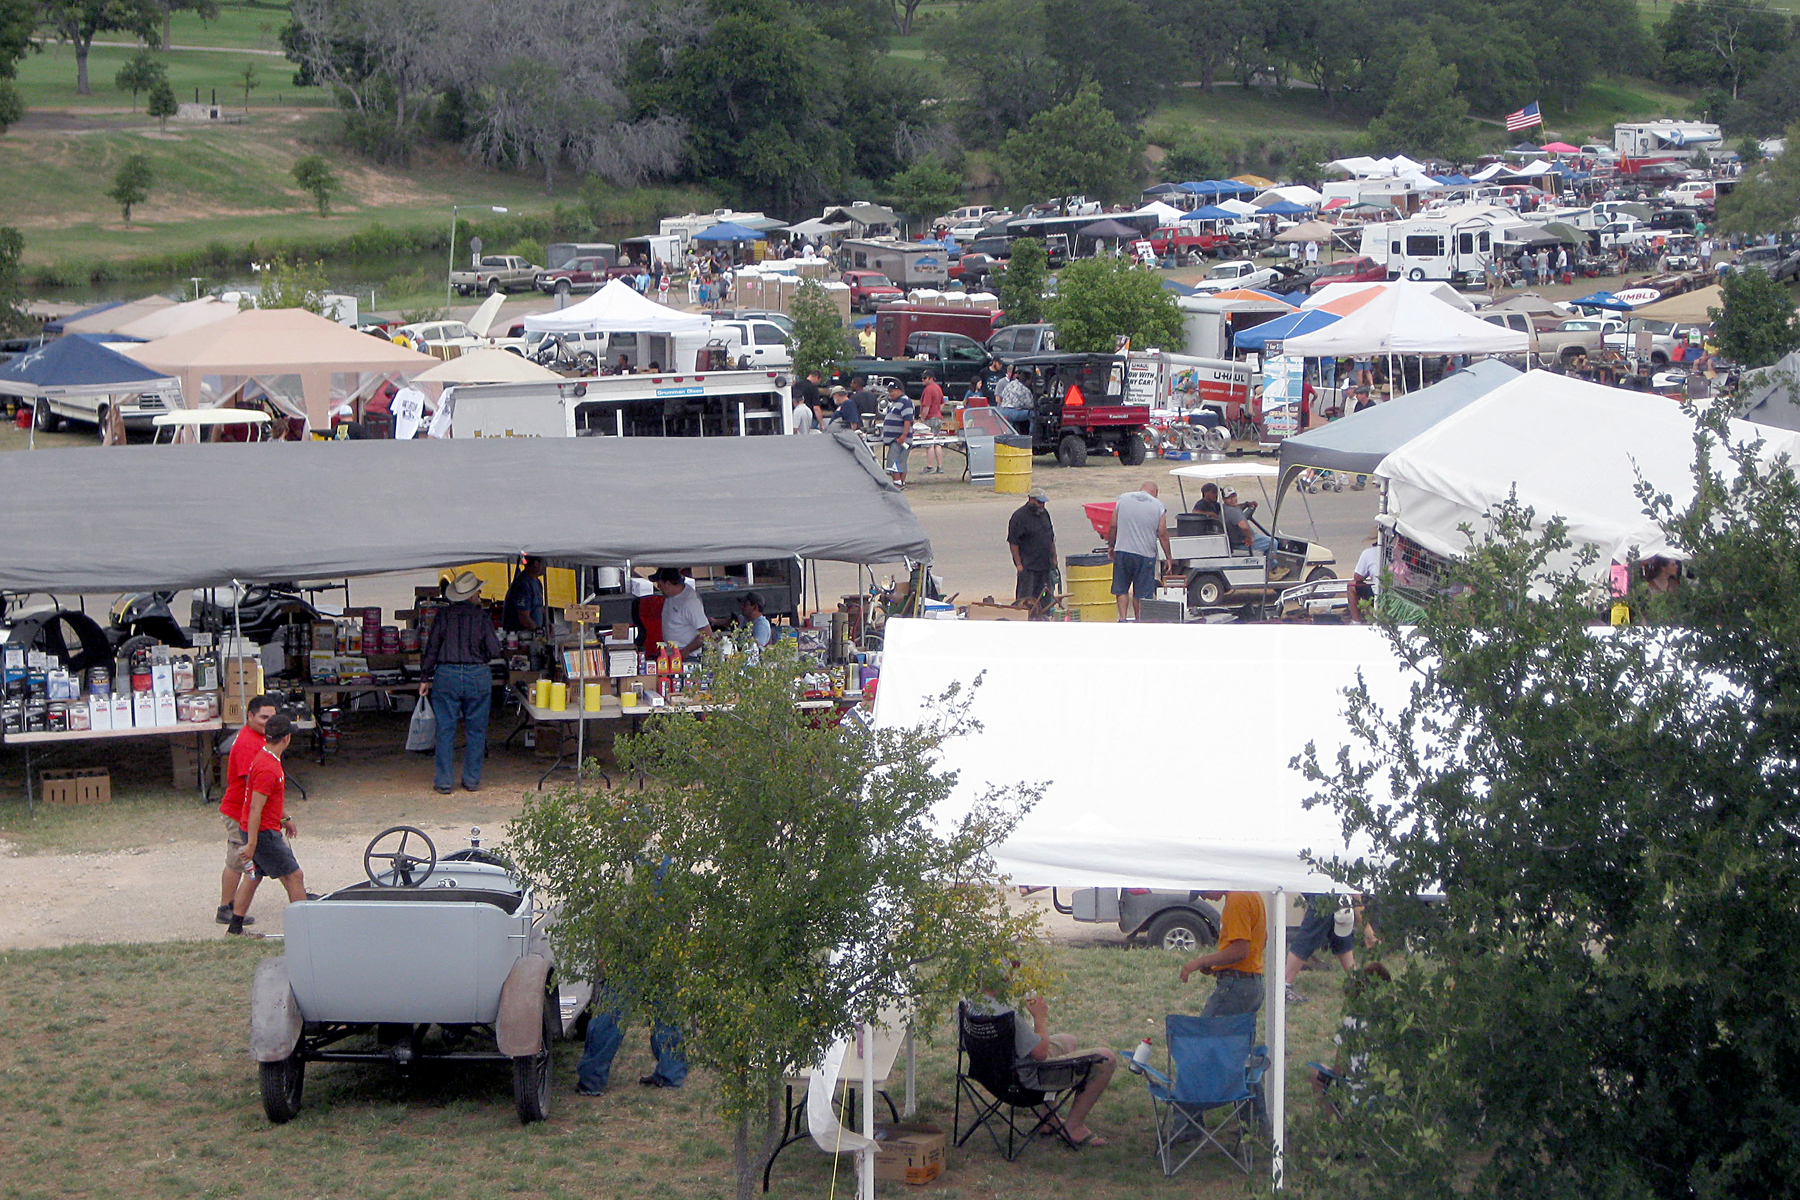 The Fredericksburg Swap Meet features up to 900 vendors at Lady Bird Johnson Park.